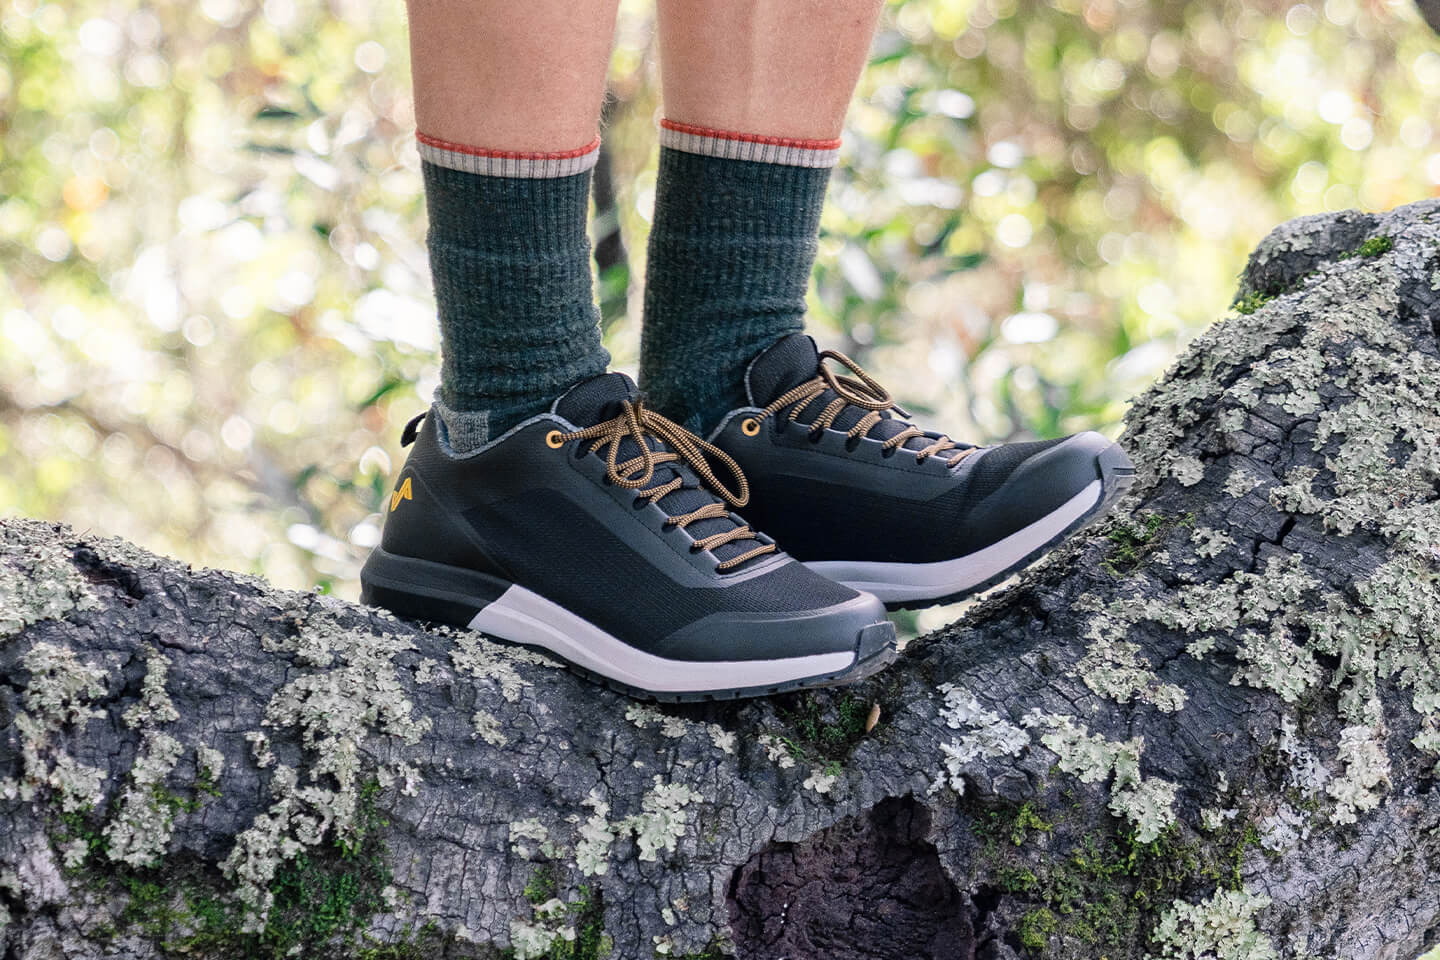 Forsake Waterproof Sneakerboots Outdoors